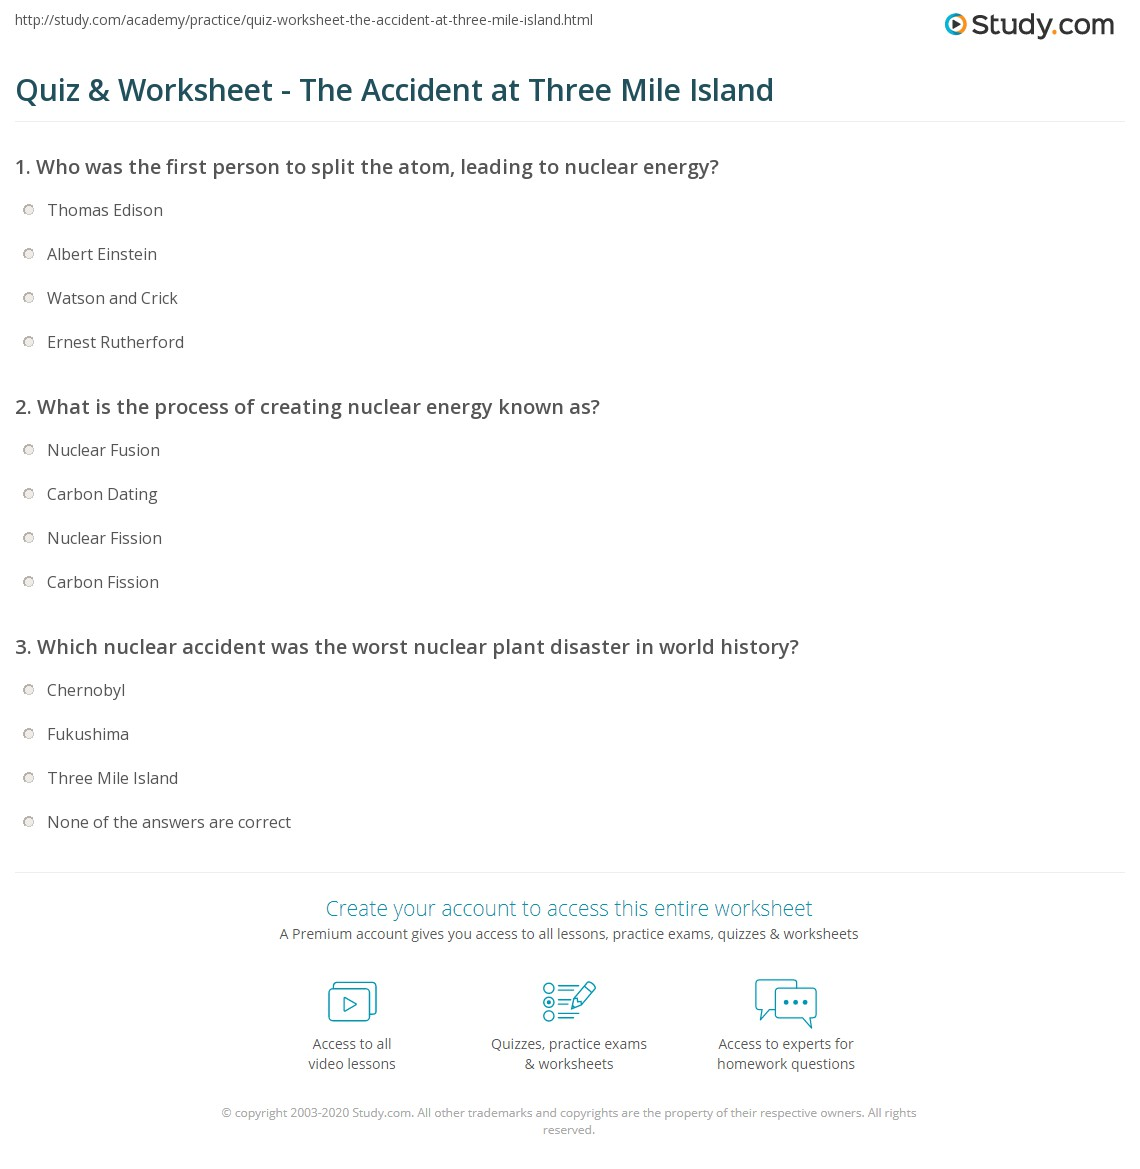 Quiz & Worksheet - The Accident at Three Mile Island | Study.com